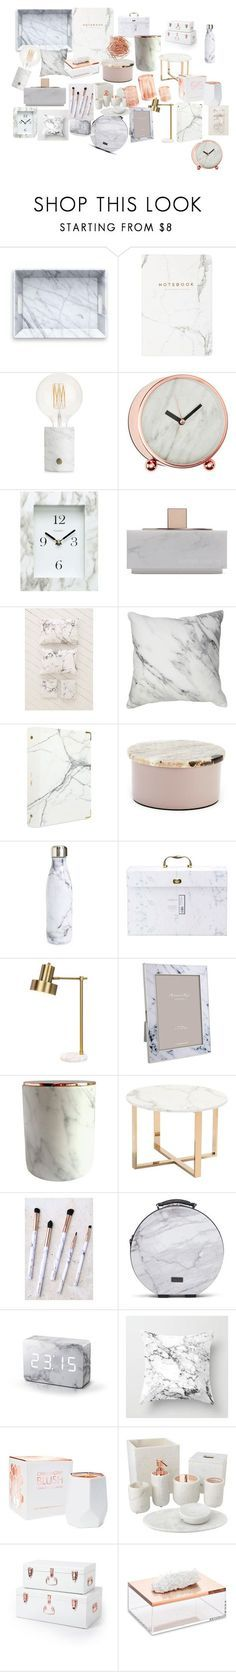 """""""marble rose gold"""" by alilaforce on Polyvore featuring interior, interiors, interior design, home, home decor, interior decorating, A by Amara, Chaney, Native Union and Urban Outfitters"""